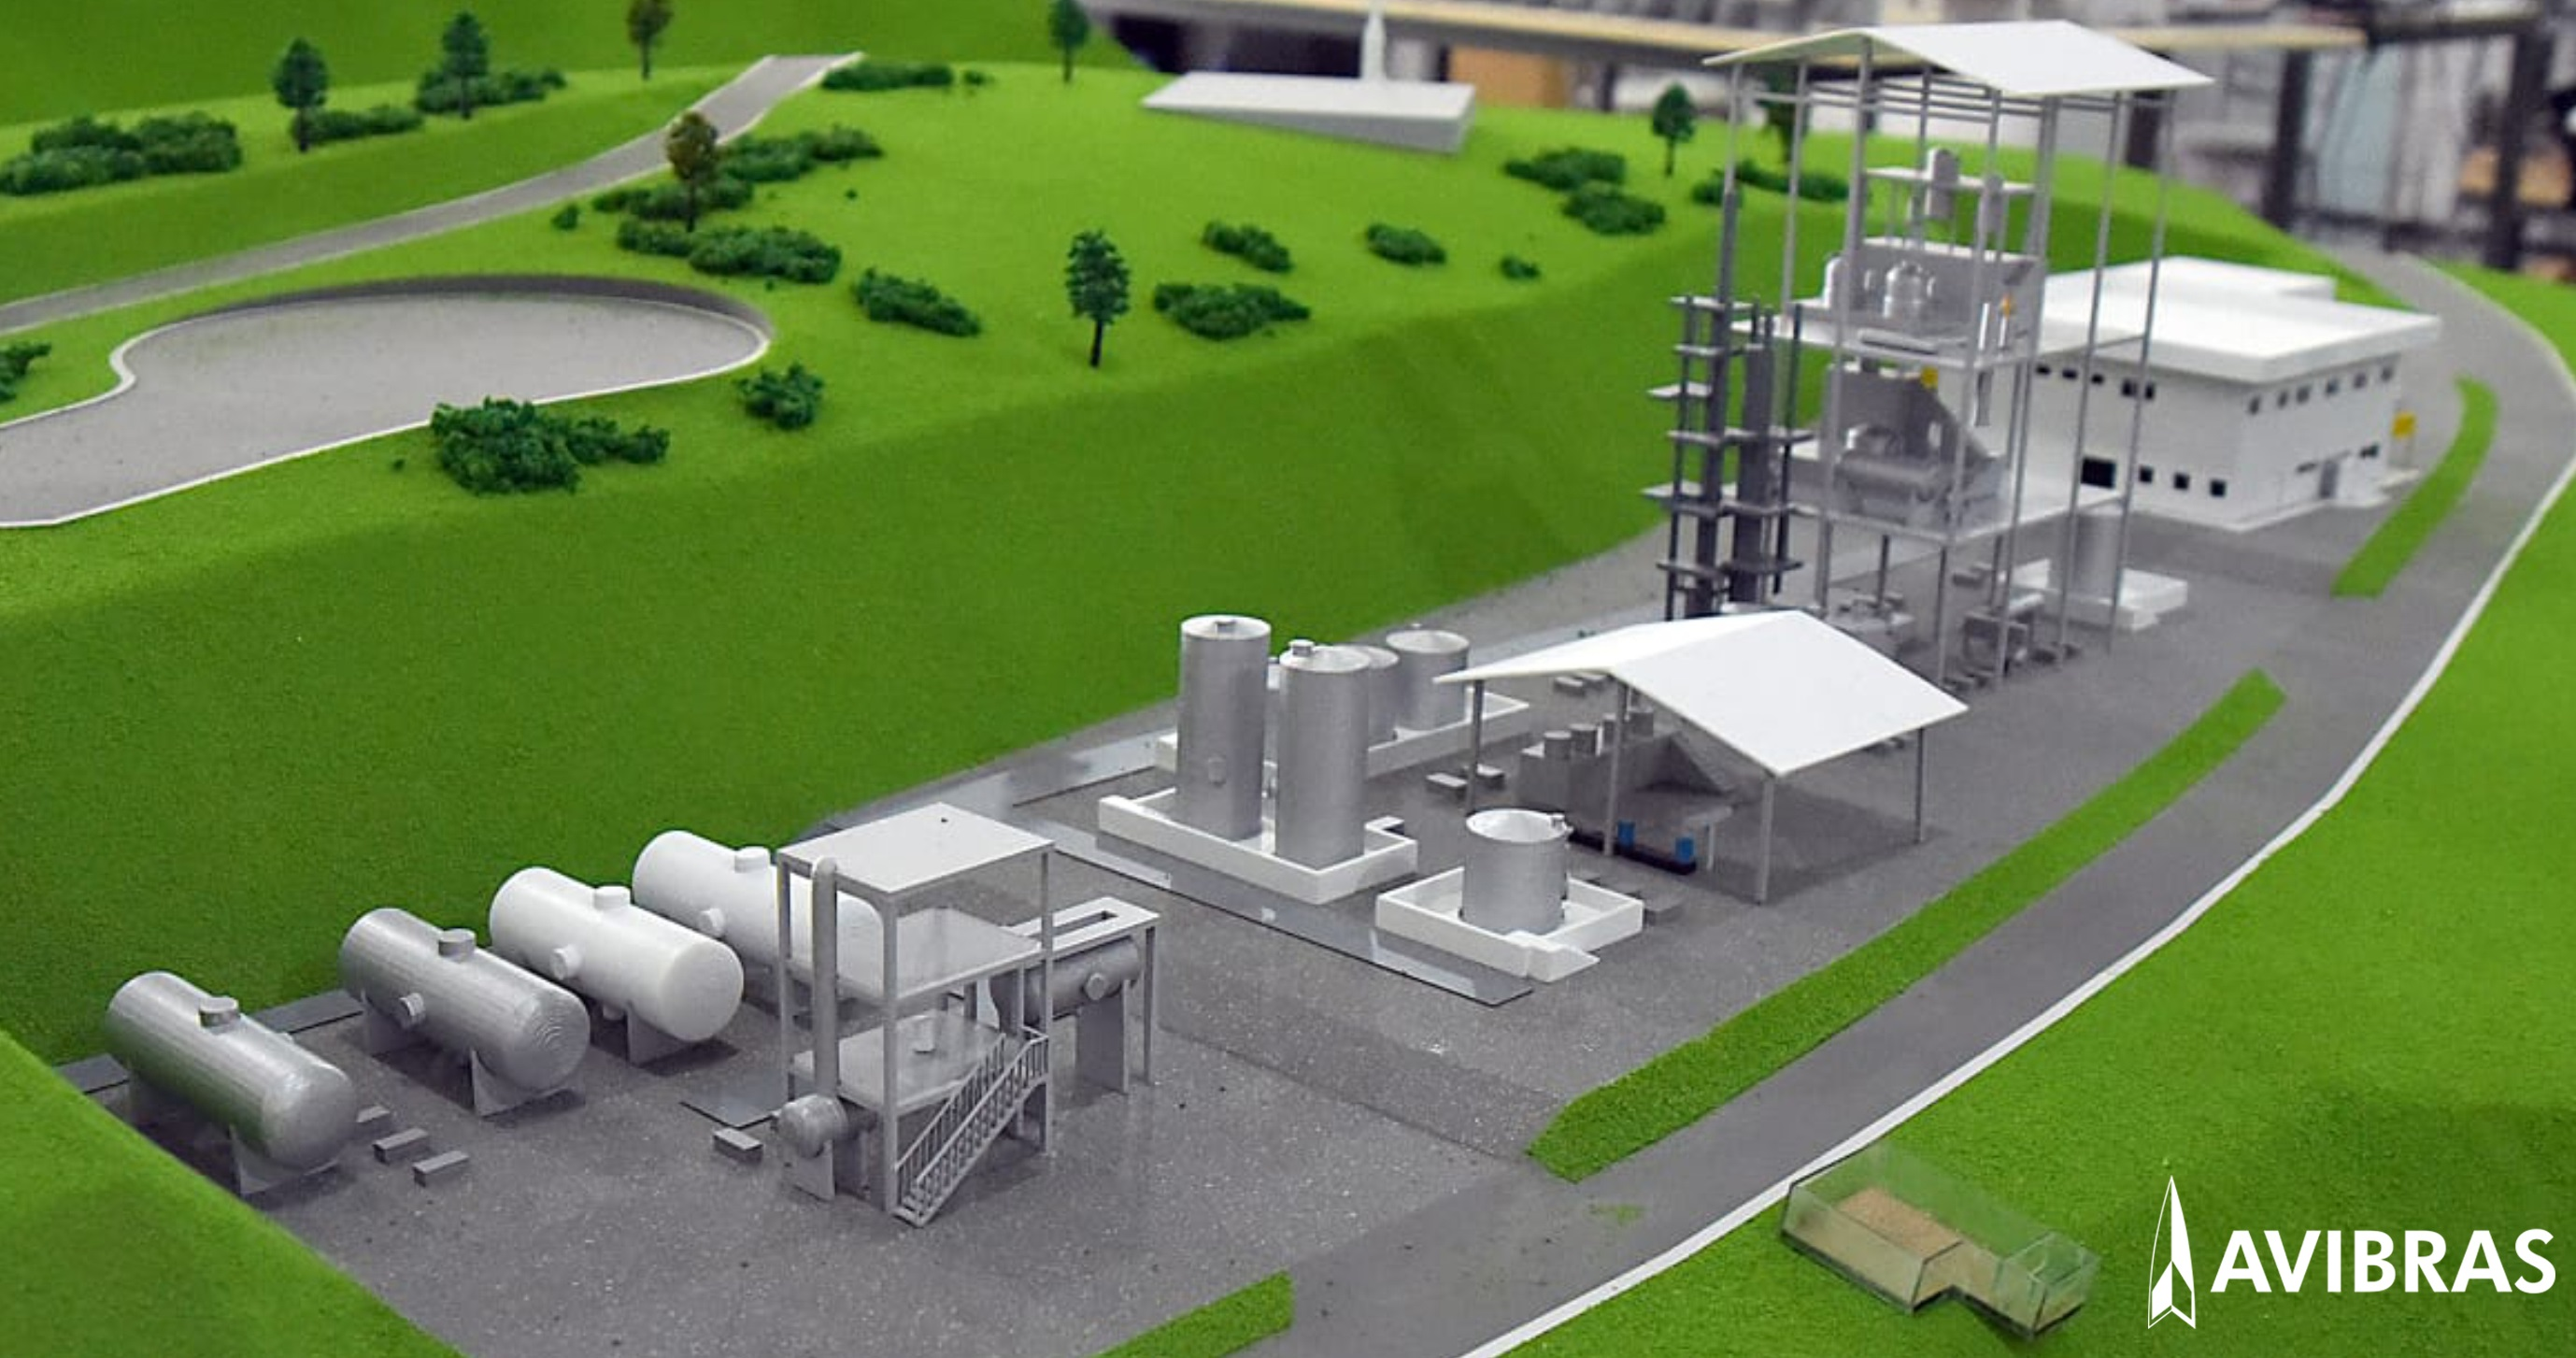 Avibras new industrial facility in Lorena (SP) will produce raw material for solid fuel of the Brazilian Space Program